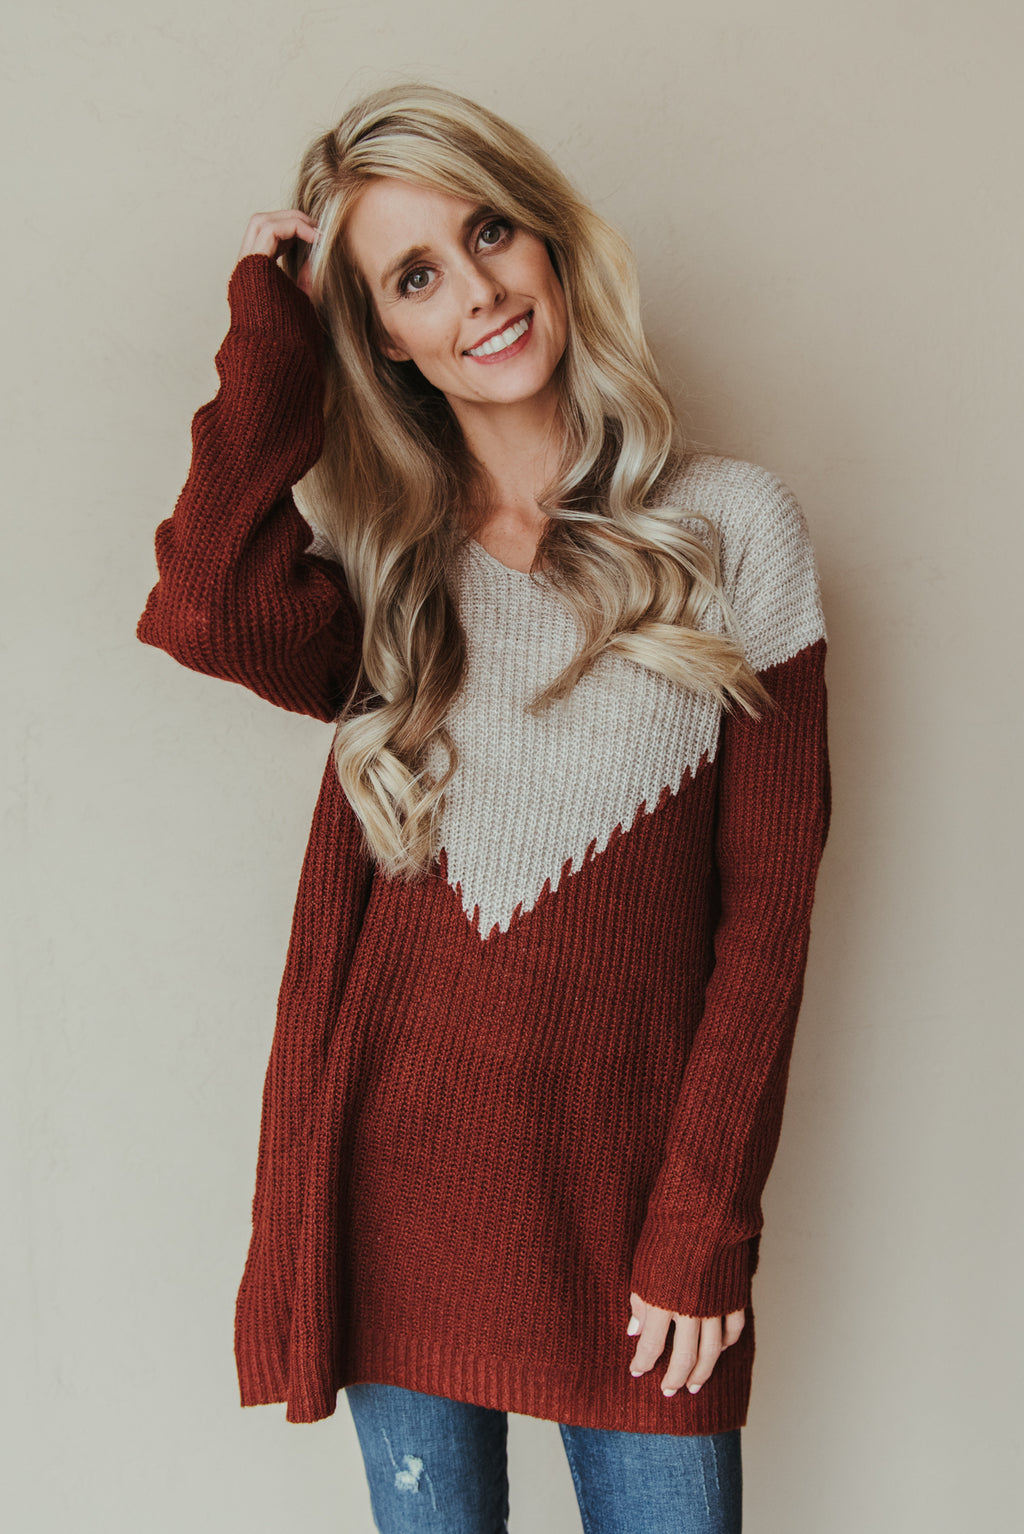 Sweet Memories Stitched Detail Pullover ~ Oatmeal and Copper - J. Lilly's Boutique